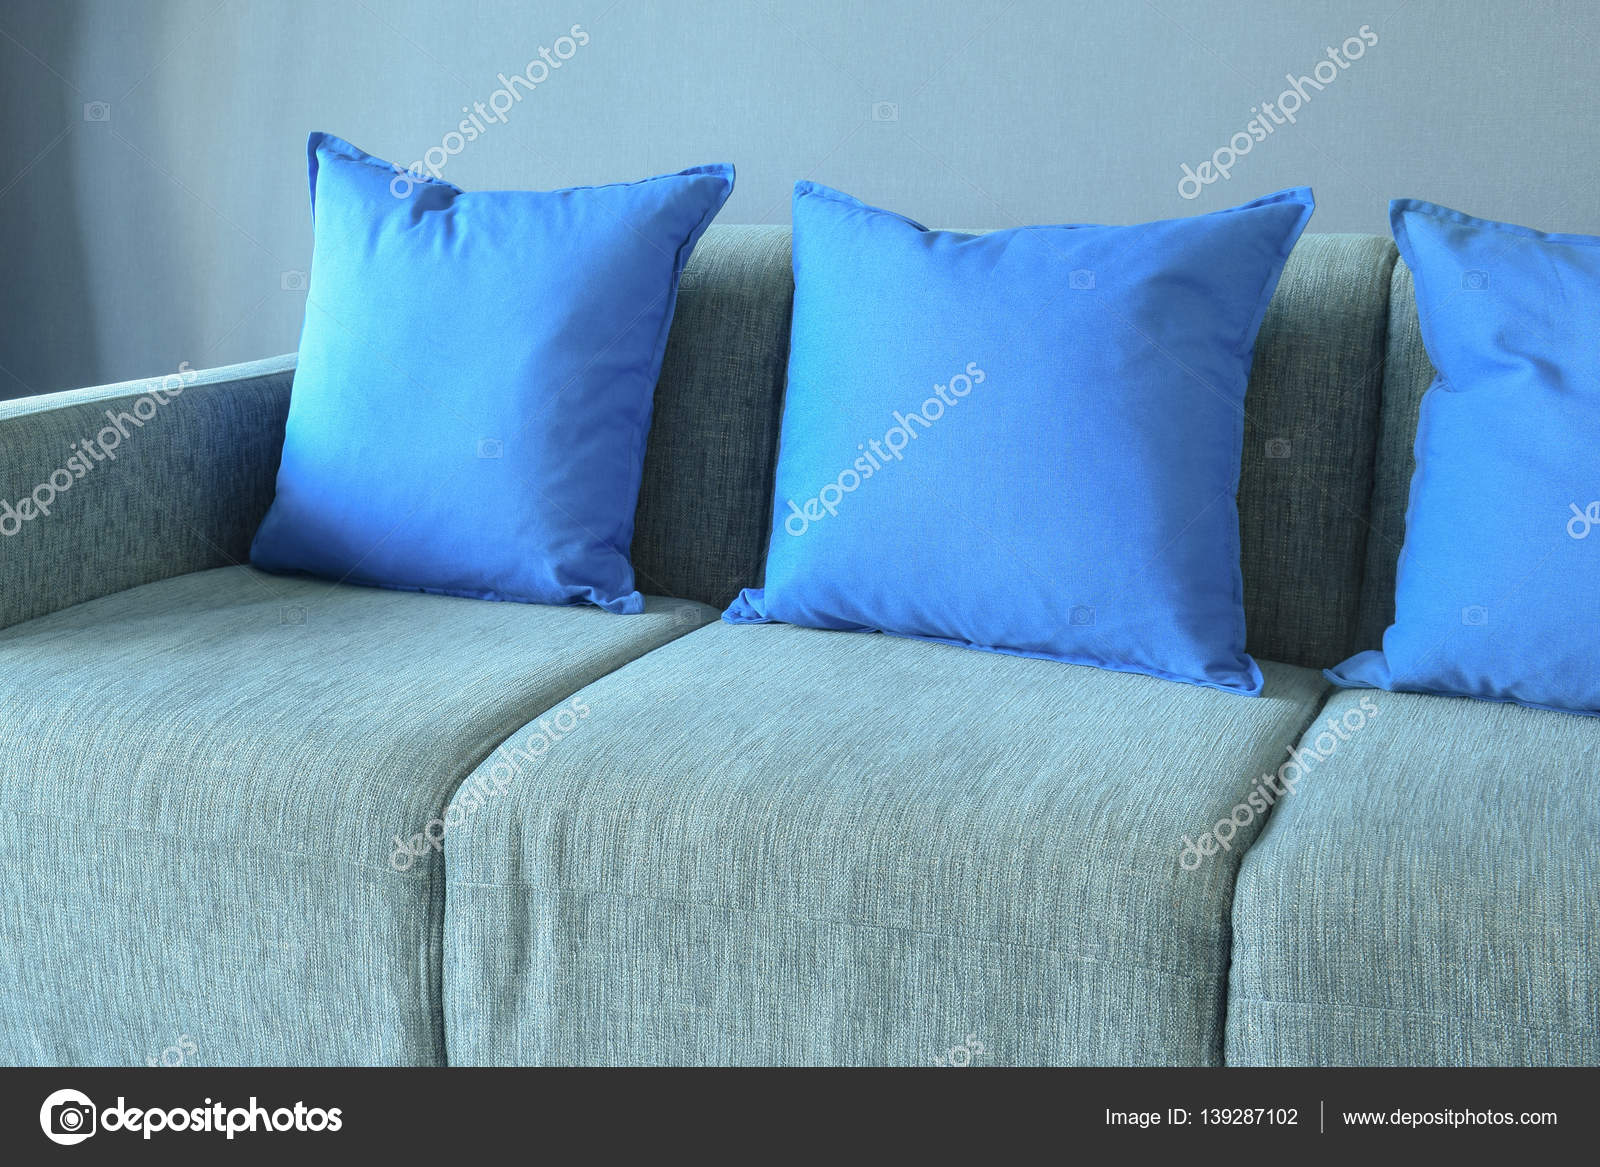 Stupendous Blue Color Pillows Setting On Light Blue Sofa With Blue Wall Uwap Interior Chair Design Uwaporg